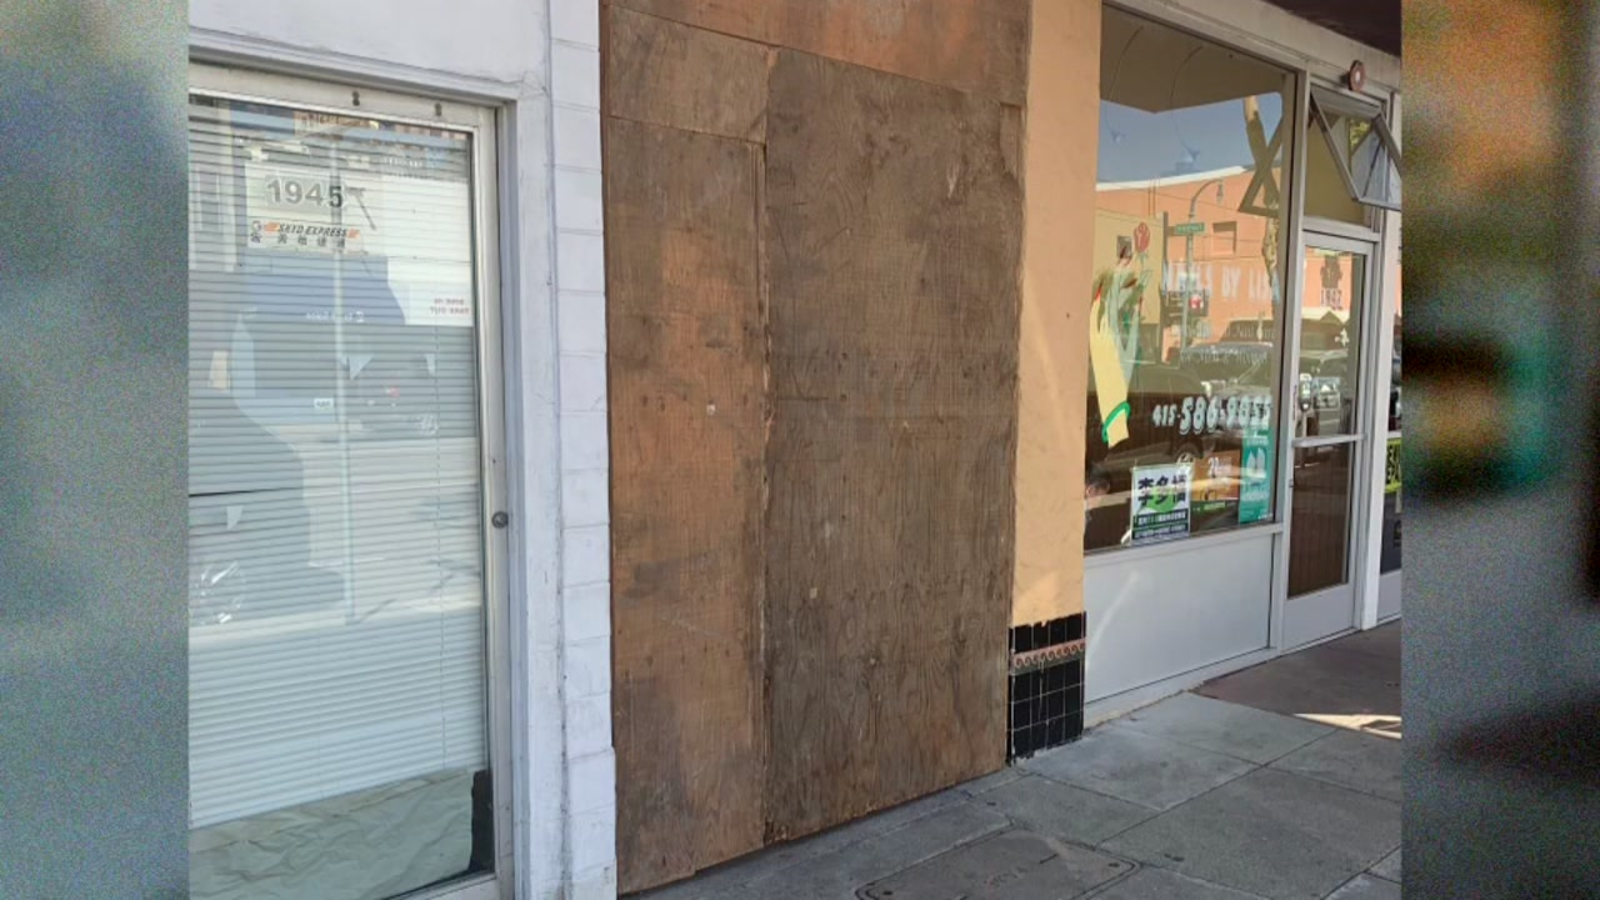 Neighbor blocks San Francisco alleyway with plywood wall to keep out homeless people, drug dealers